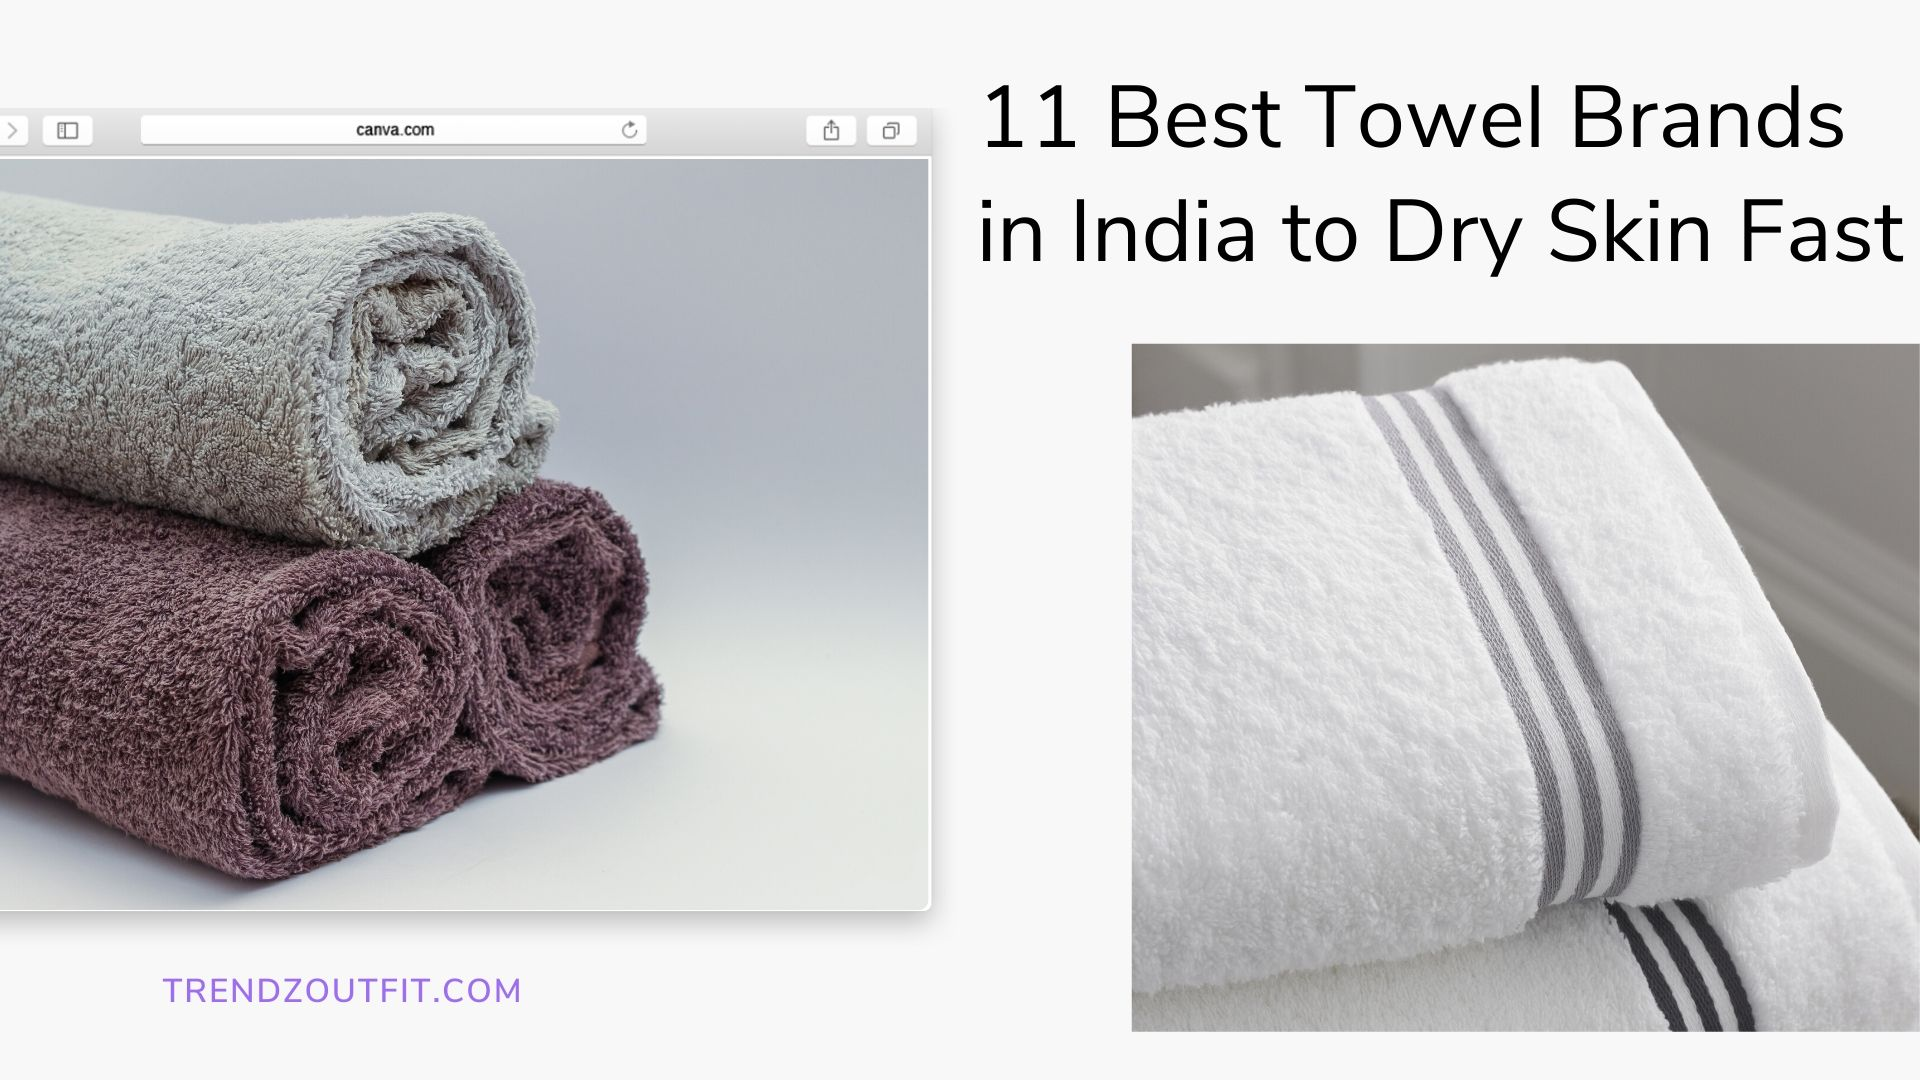 Best Towel Brands in India